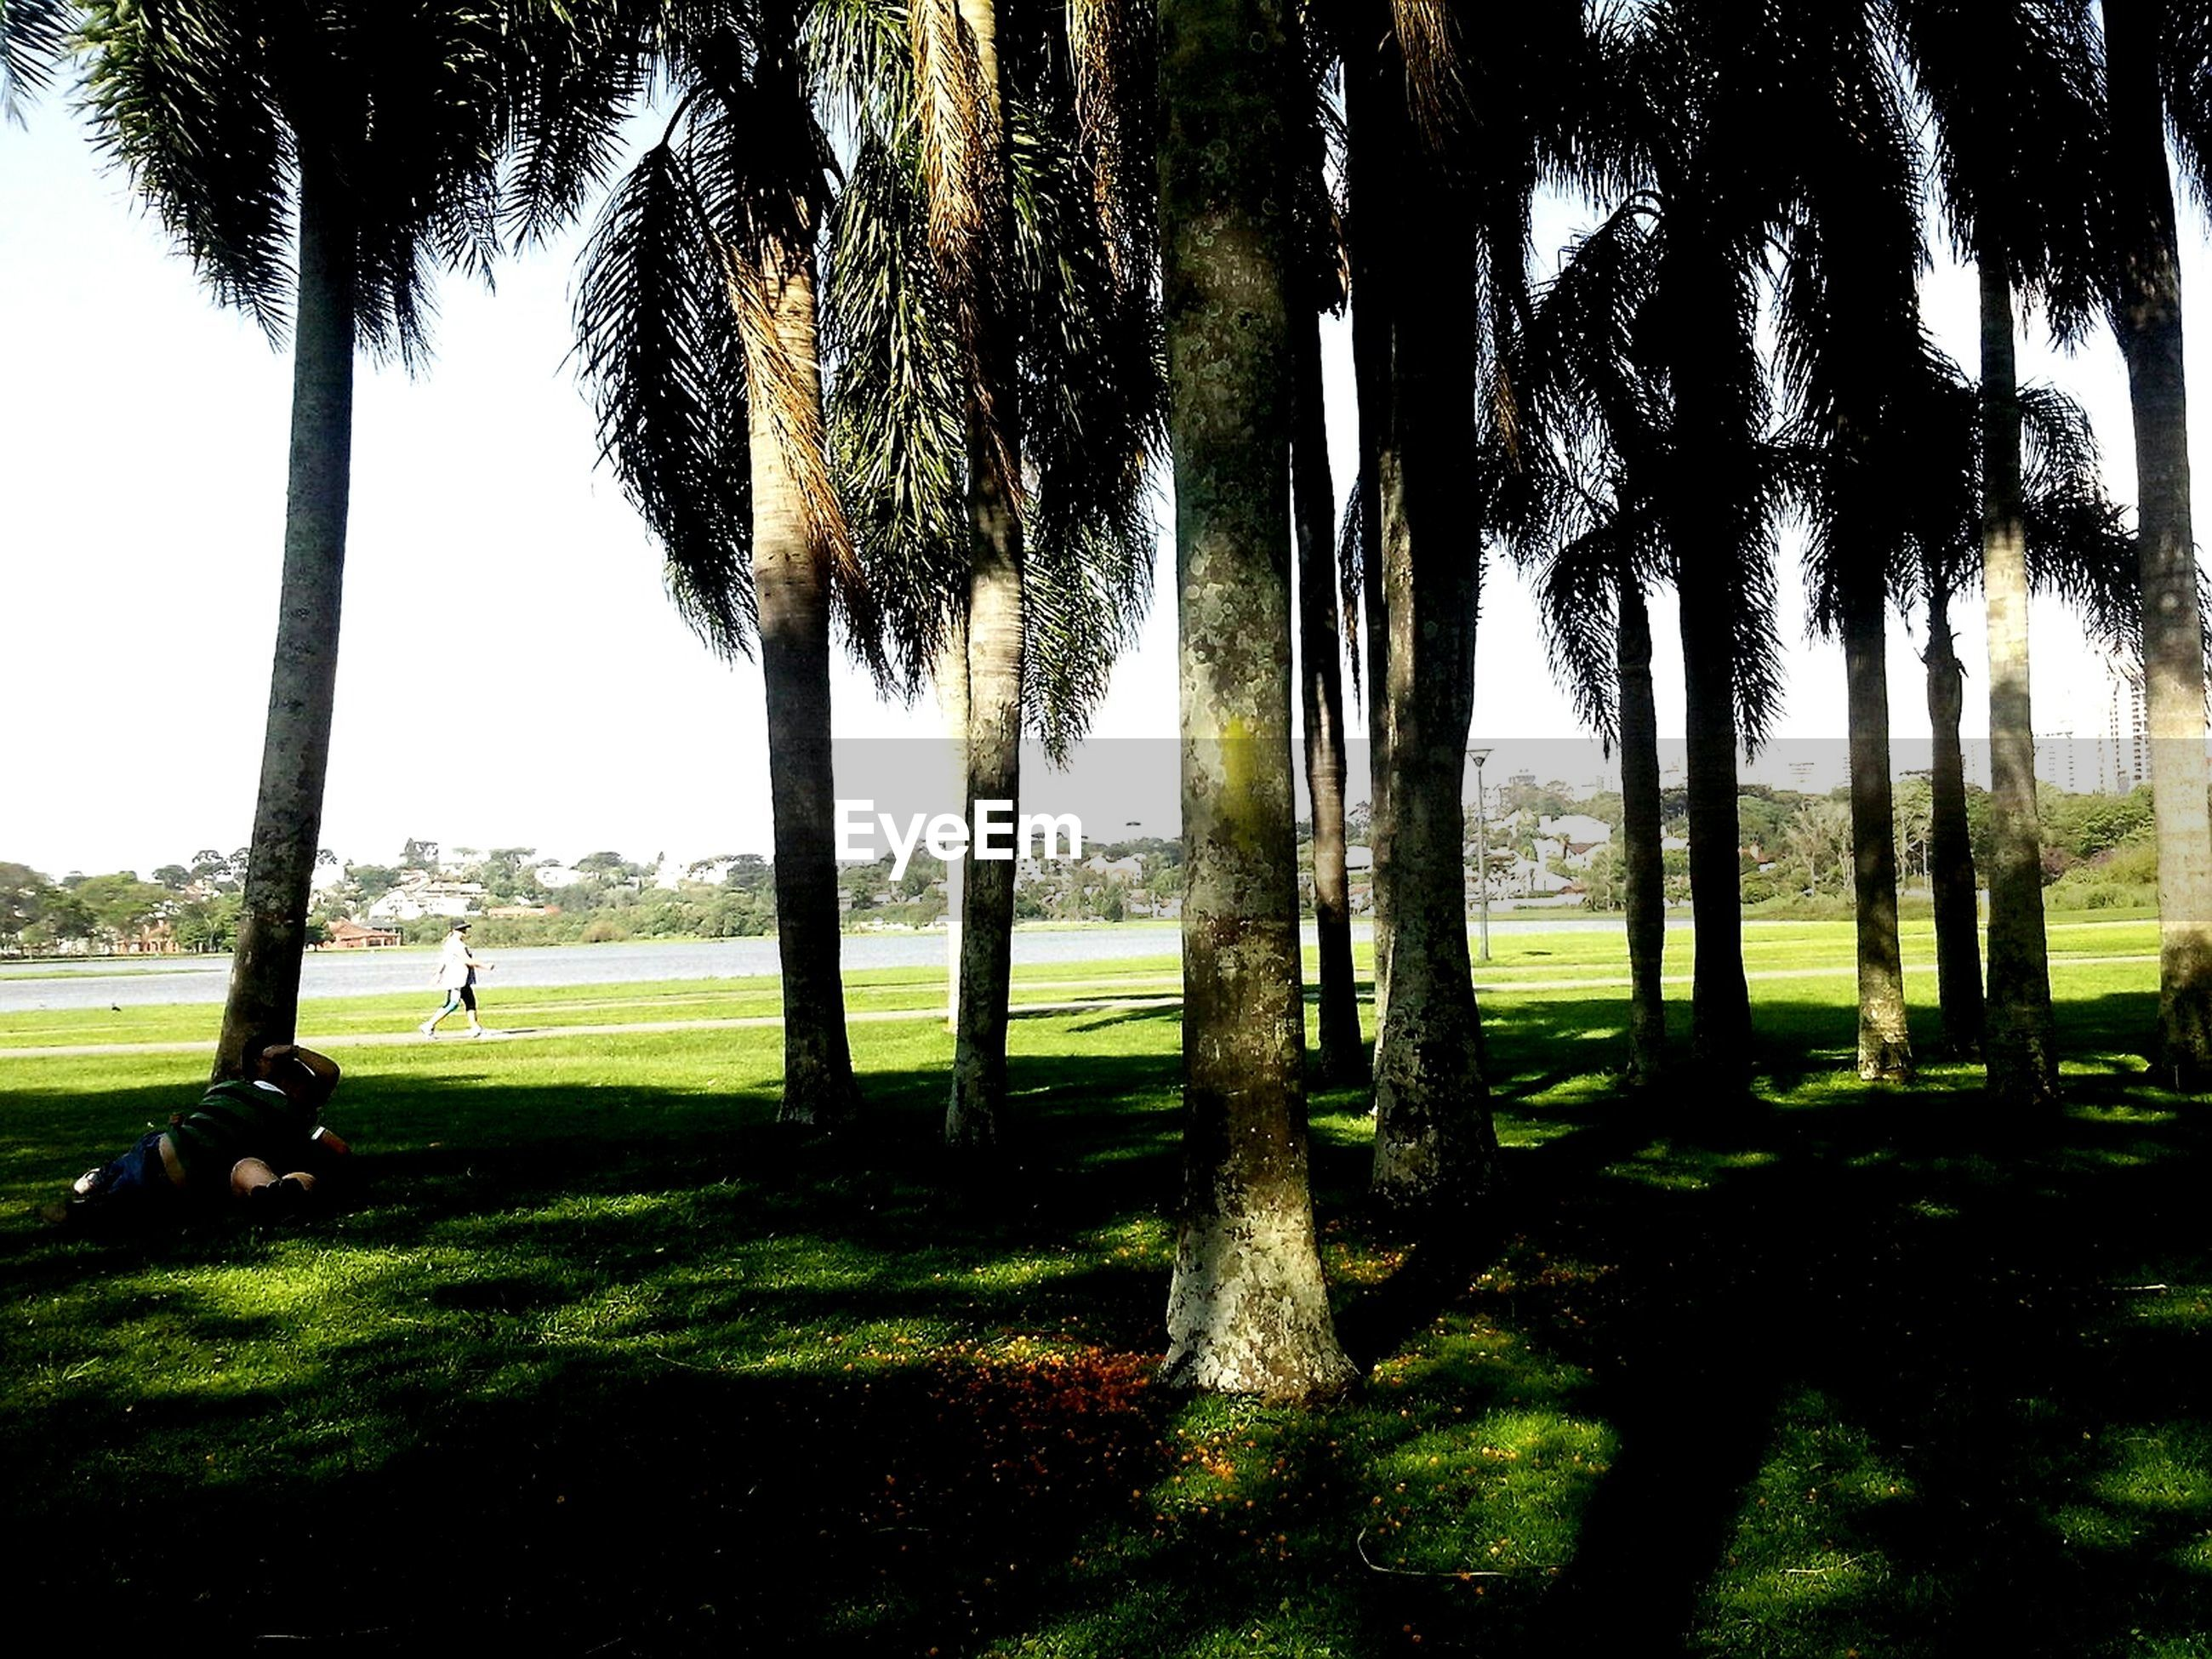 tree, tree trunk, palm tree, grass, growth, tranquility, park - man made space, nature, green color, beauty in nature, tranquil scene, sunlight, scenics, field, sky, shadow, day, outdoors, branch, tall - high